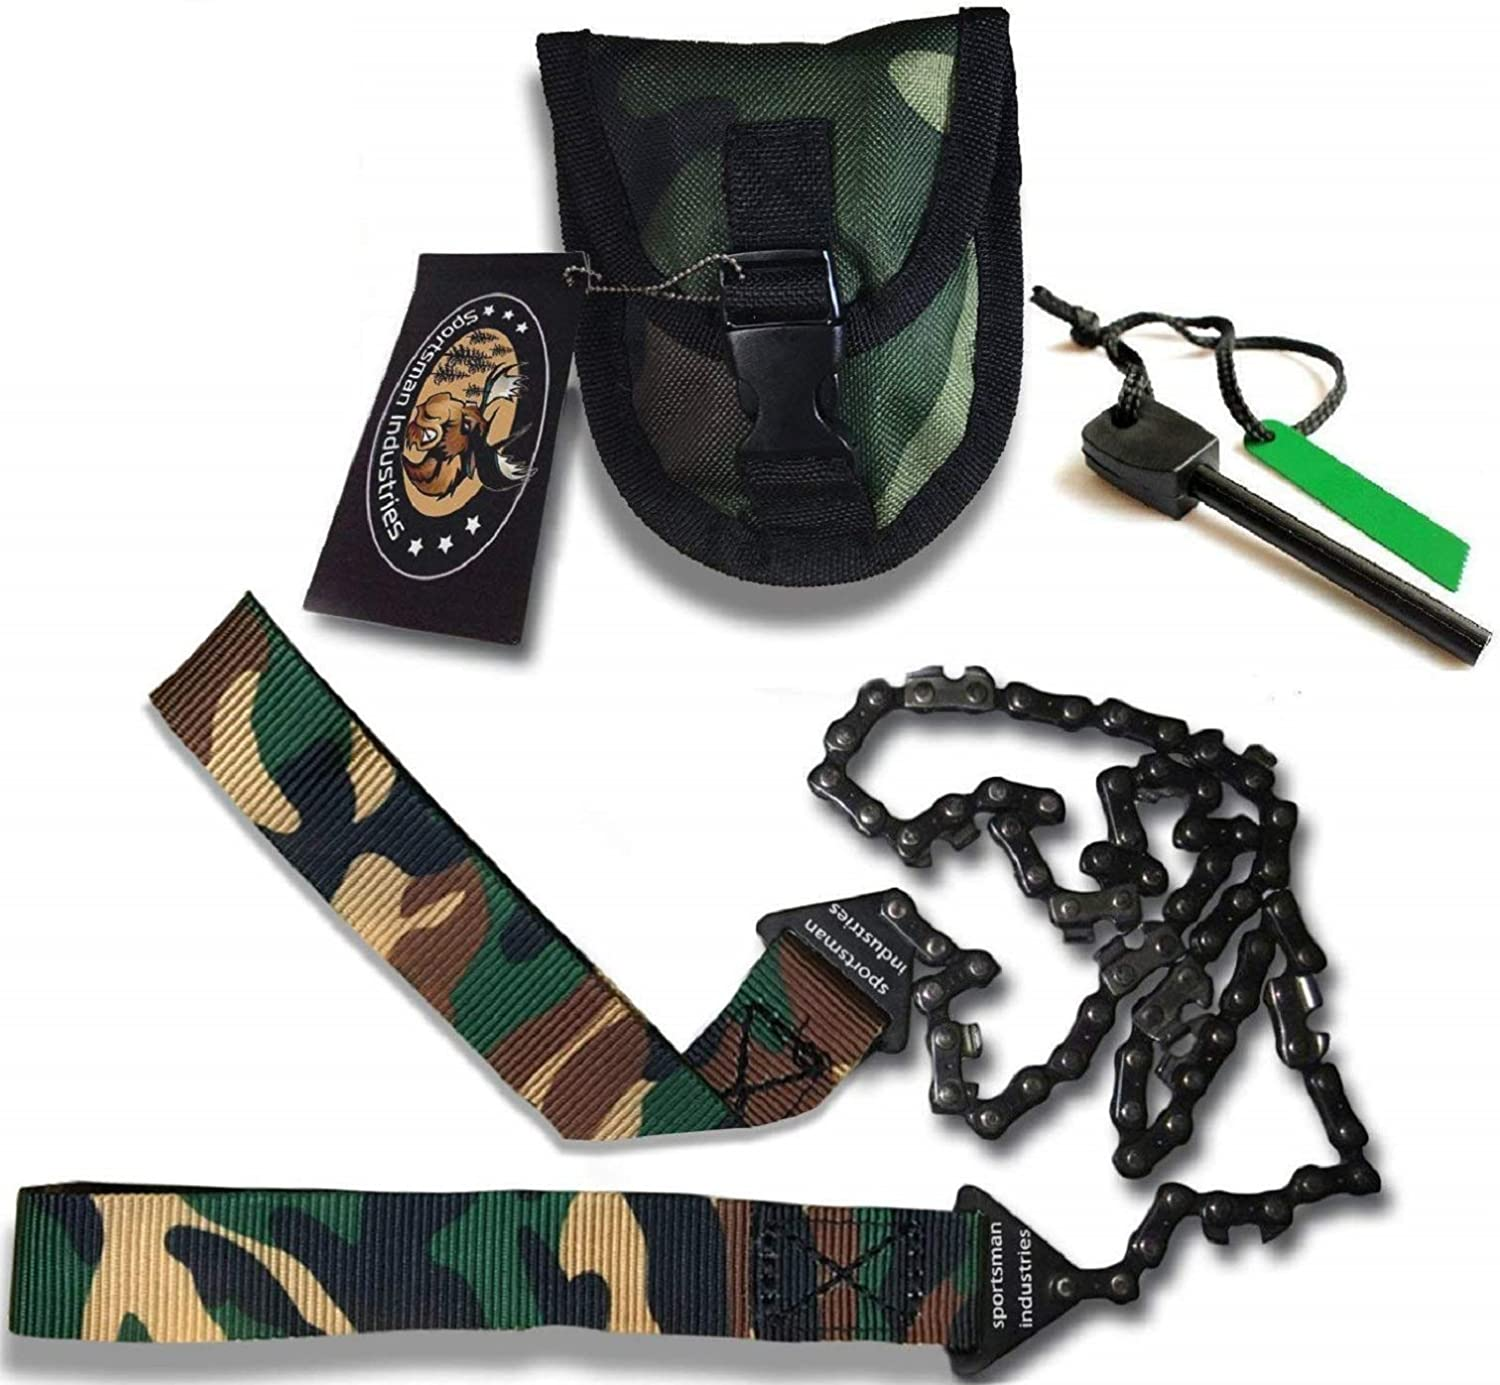 Sportsman Camouflage Pocket Chainsaw 36 Inches Long Chain – Free Fire Starter. Best Folding Hand Saw Tool for Survival, Camping, Hunting, Tree Cutting or Emergency Kit. Replaces a Pruner Pole Saw